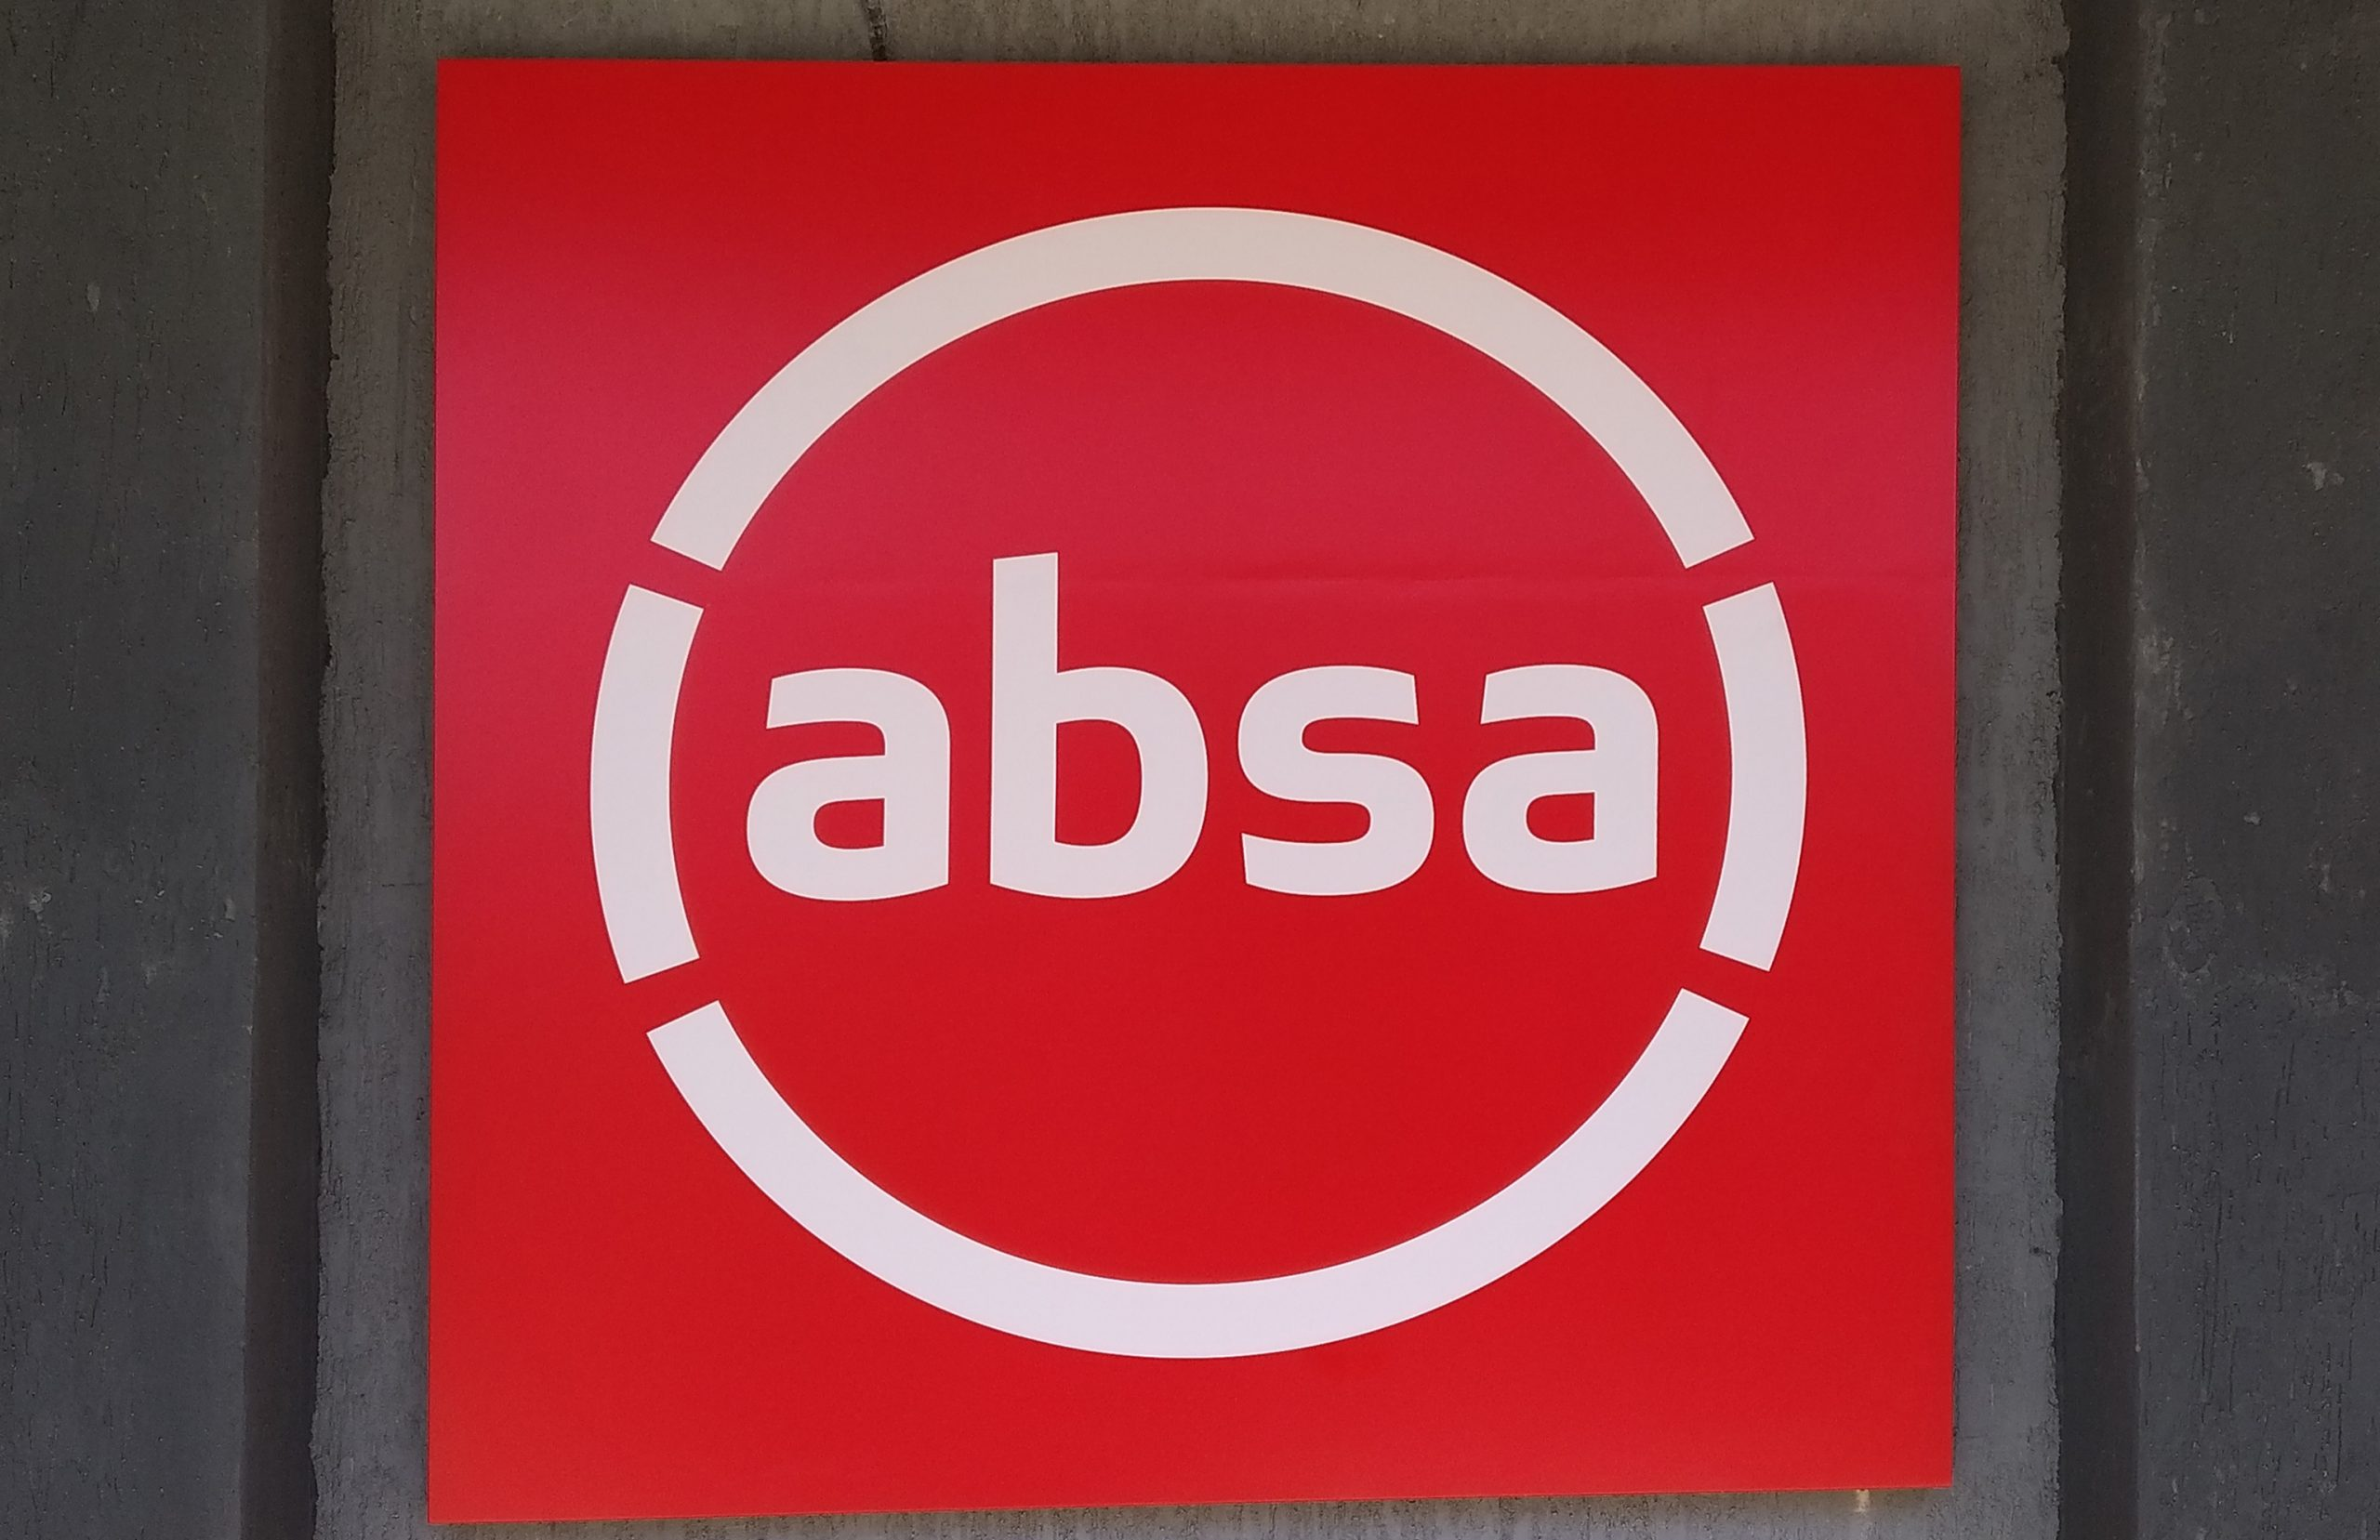 Changing a century's worth of heritage to look towards the future of the Absa Group